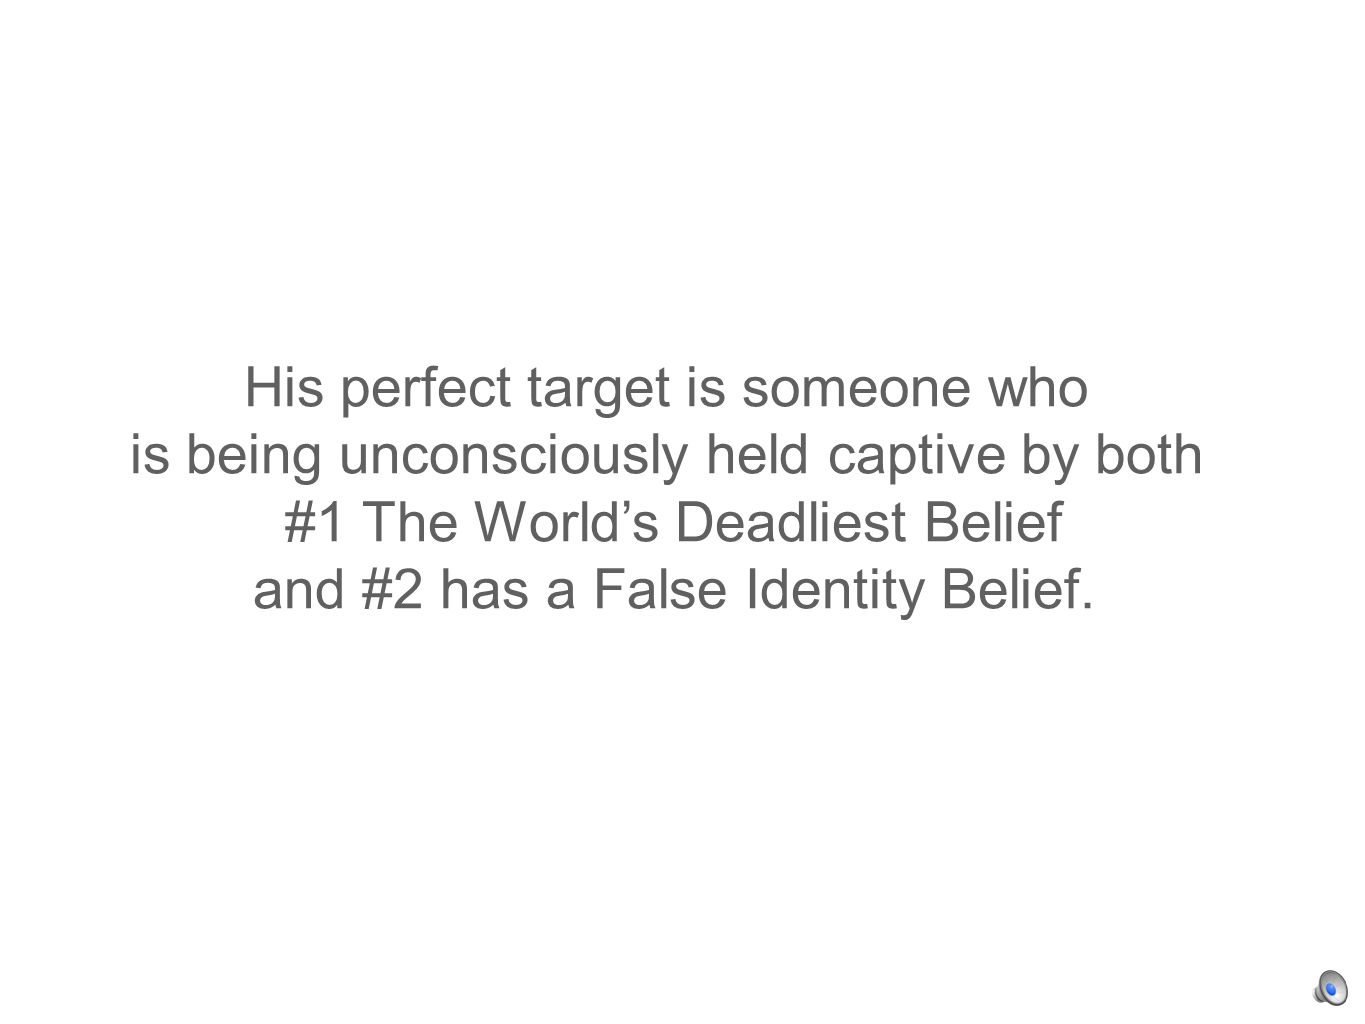 His perfect target is someone who is being unconsciously held captive by both #1 The Worlds Deadliest Belief and #2 has a False Identity Belief.